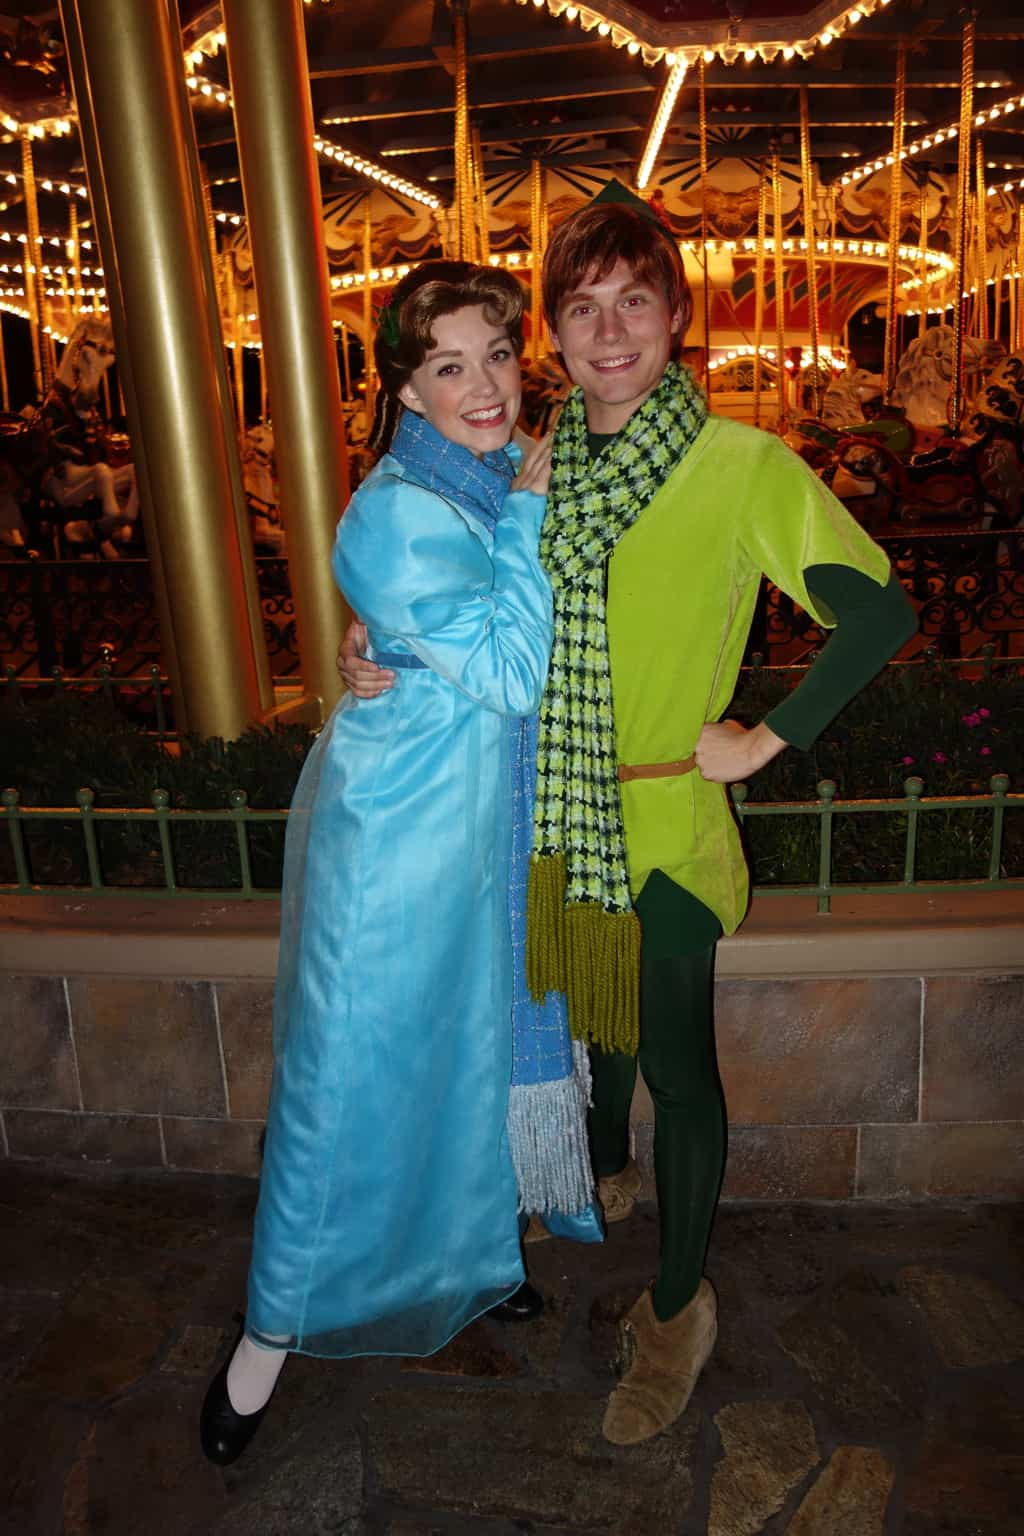 Wendy darling archives kennythepirate peter pan wendy darling at mickeys very merry christmas party 2012 kristyandbryce Image collections